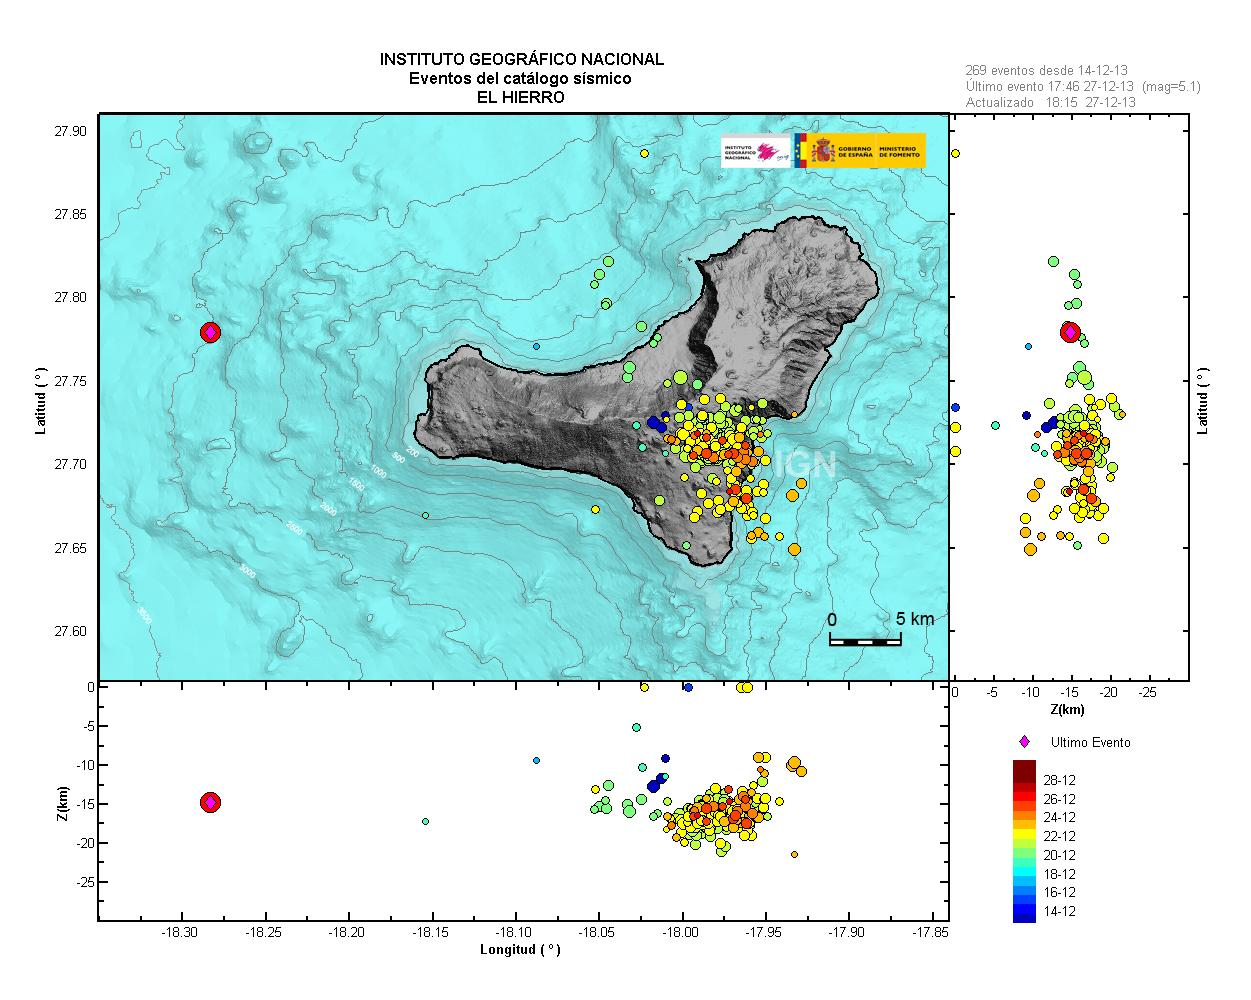 Map of recent earthquakes; the magnitude 5.1 event this afternoon is the red dot west off the island.